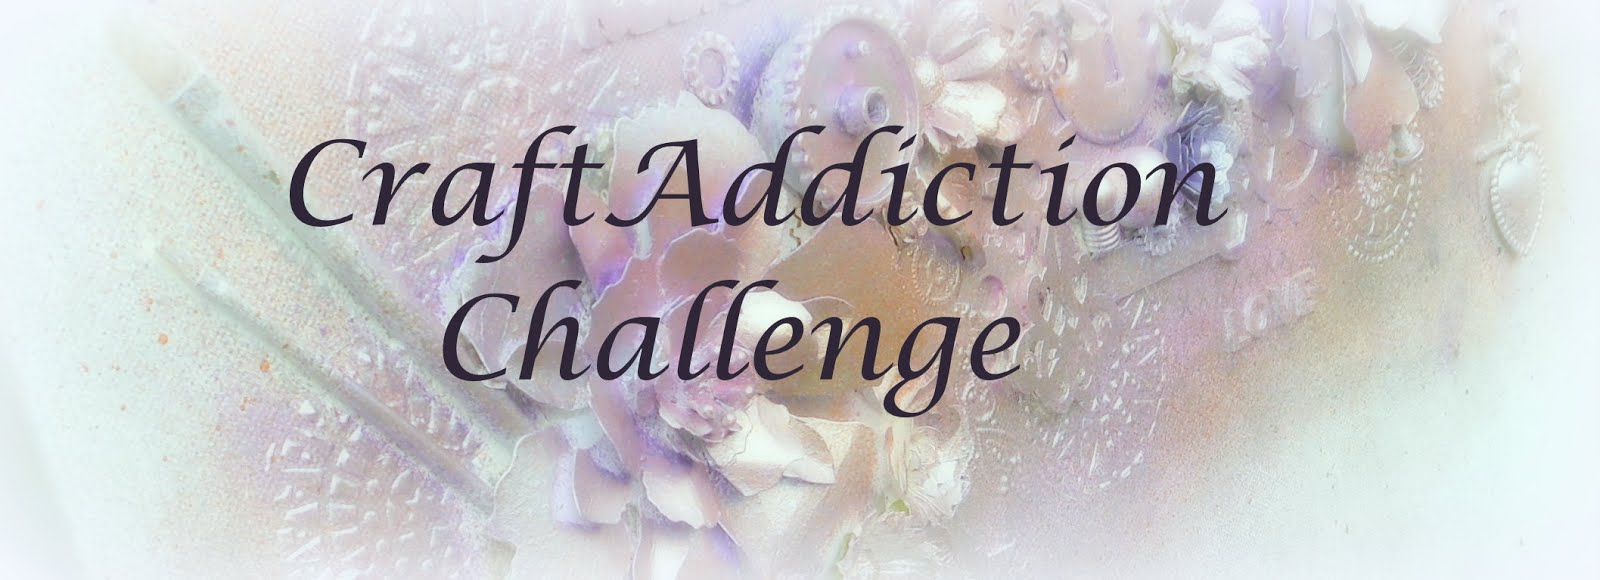 craftaddictionchallenge.